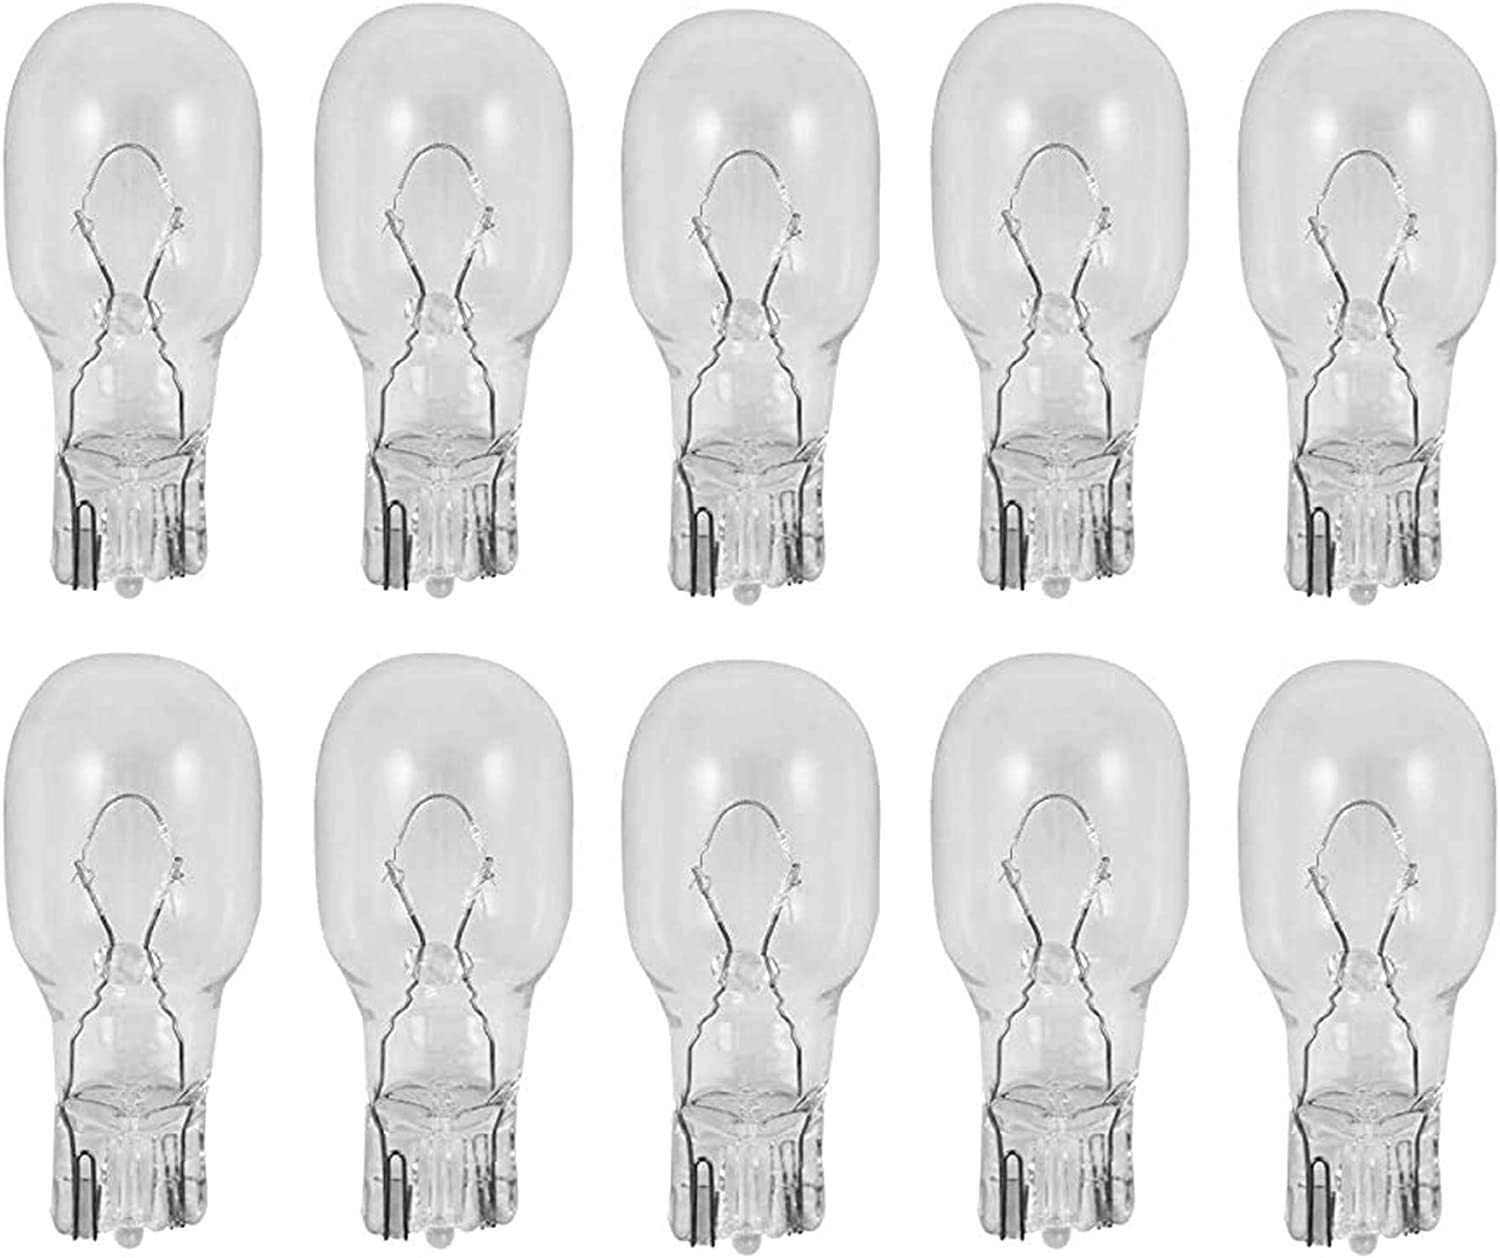 12 Volt 4 Watt Low Voltage T5 Landscape Bulb - Landscape Light Bulbs – Low Voltage Landscape Light Bulbs - 10 Pack